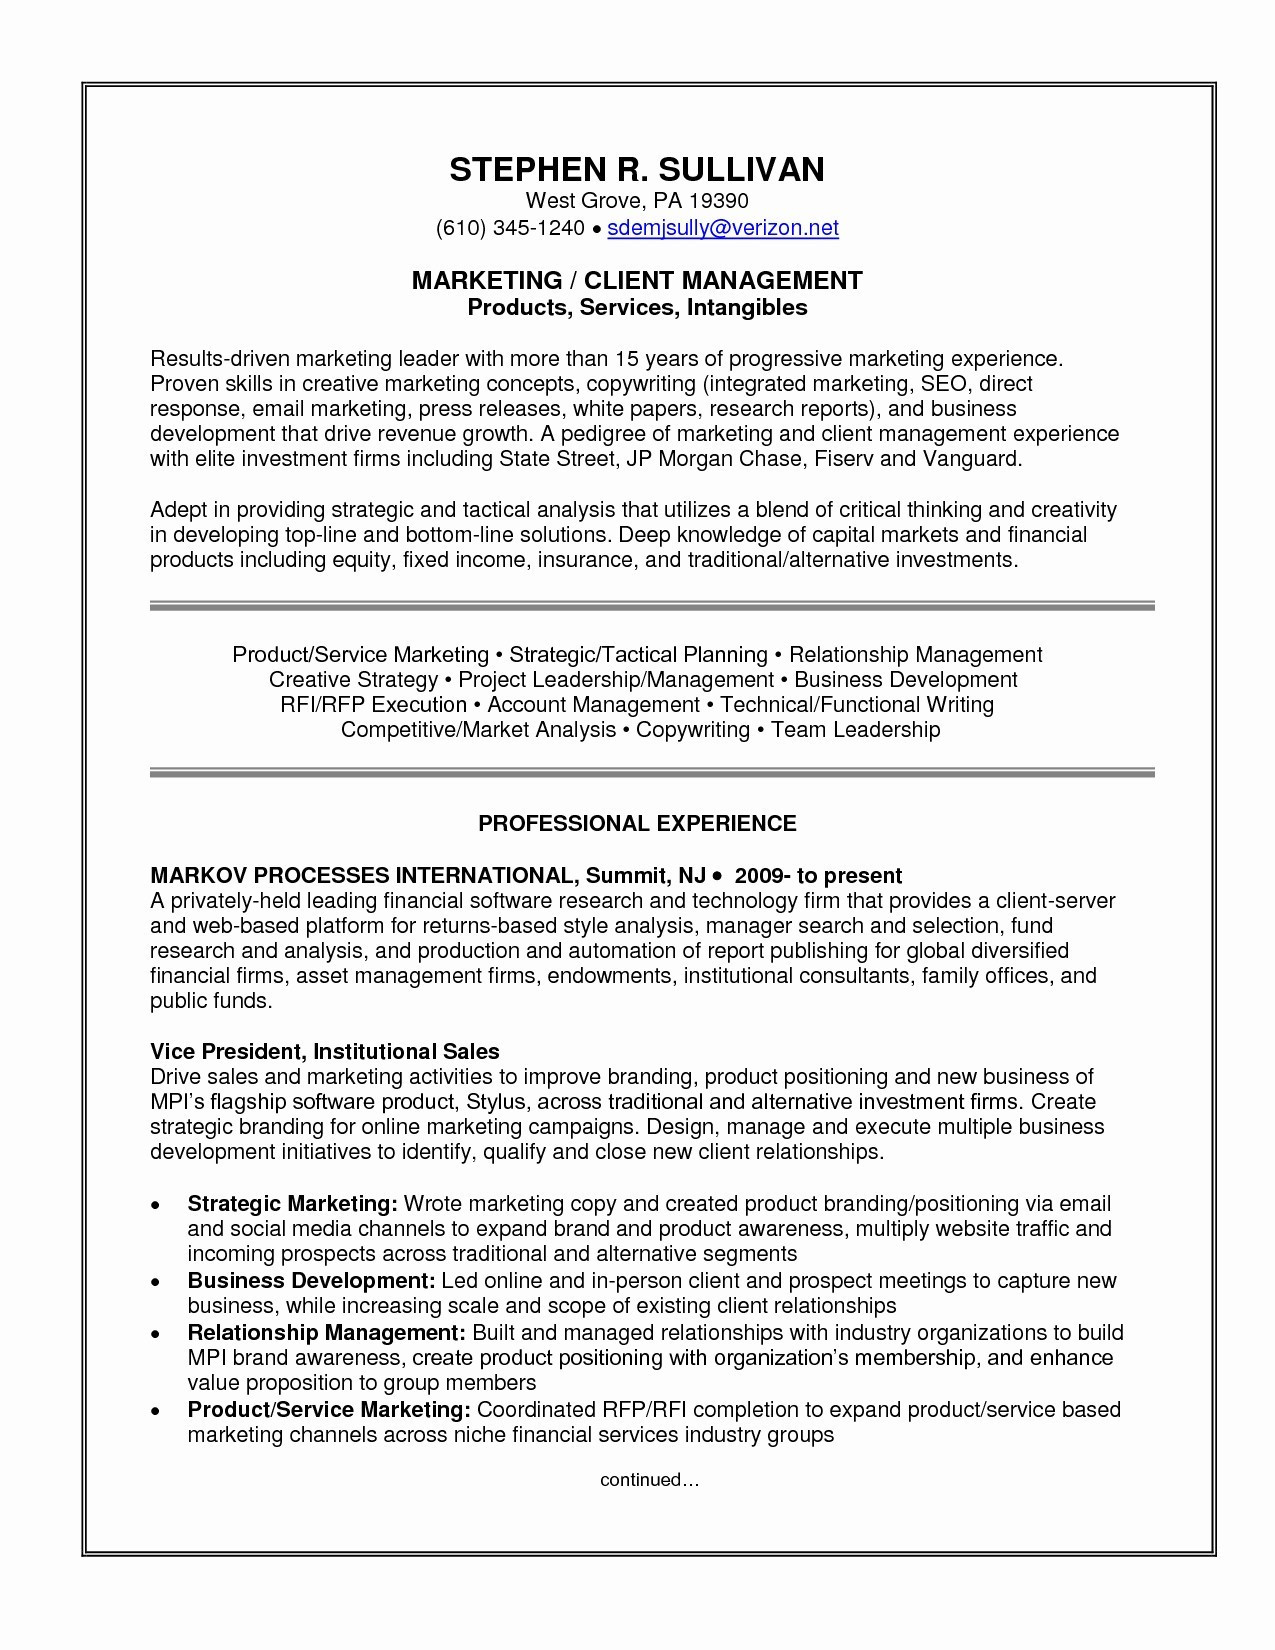 vice president resume template example-Experienced Professional Resume Template Best Top Resume Template Best Examples Resumes Ecologist Resume 0d It 5-s